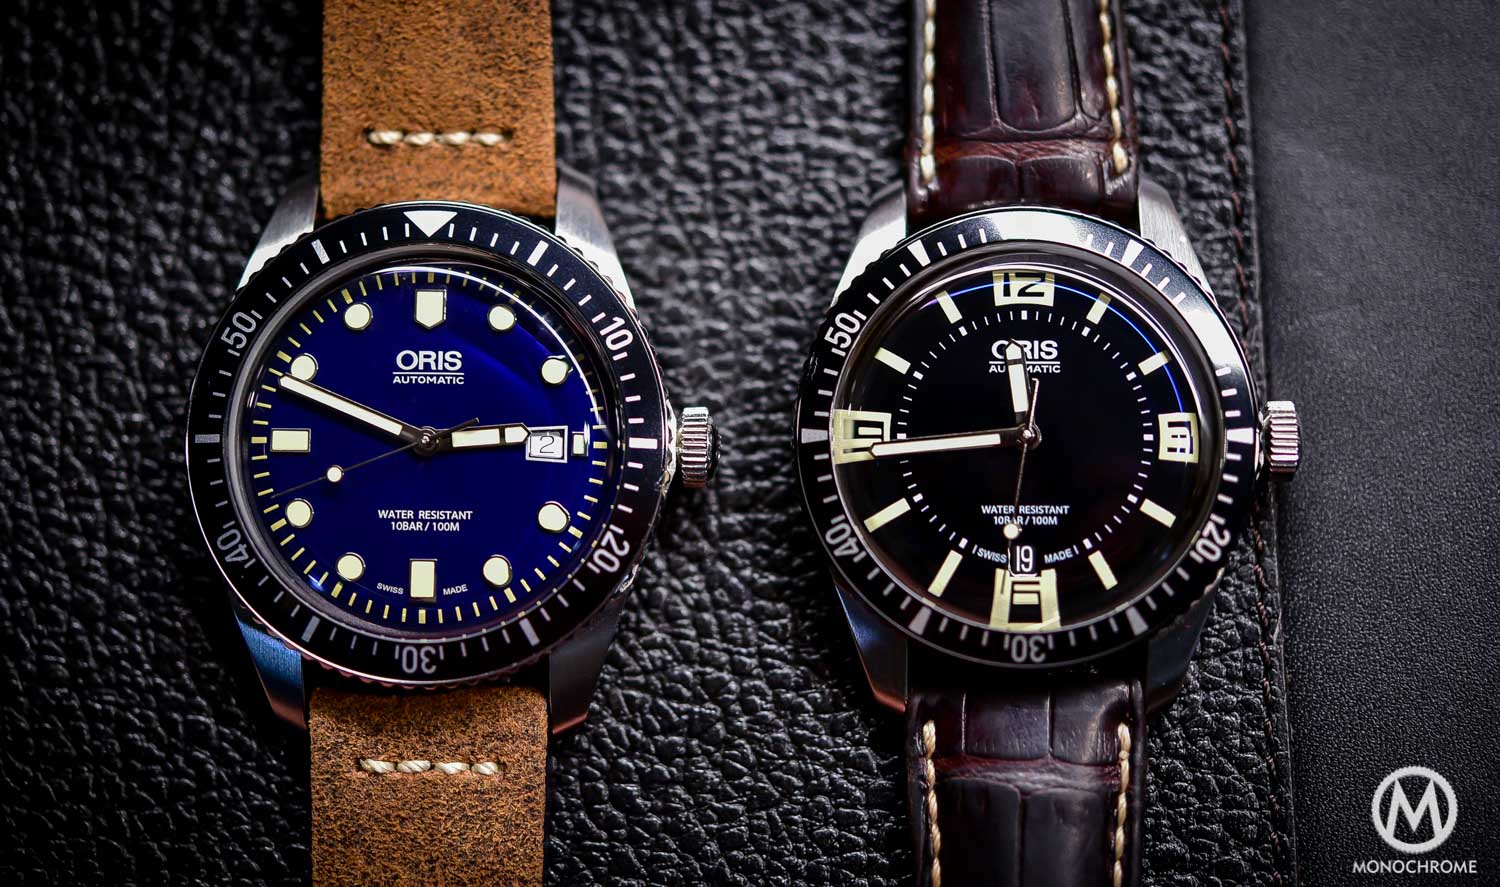 Oris Divers Sixty Five 42mm Blue Dial Vs. Oris Divers Sixty Five 40mm Black Dial